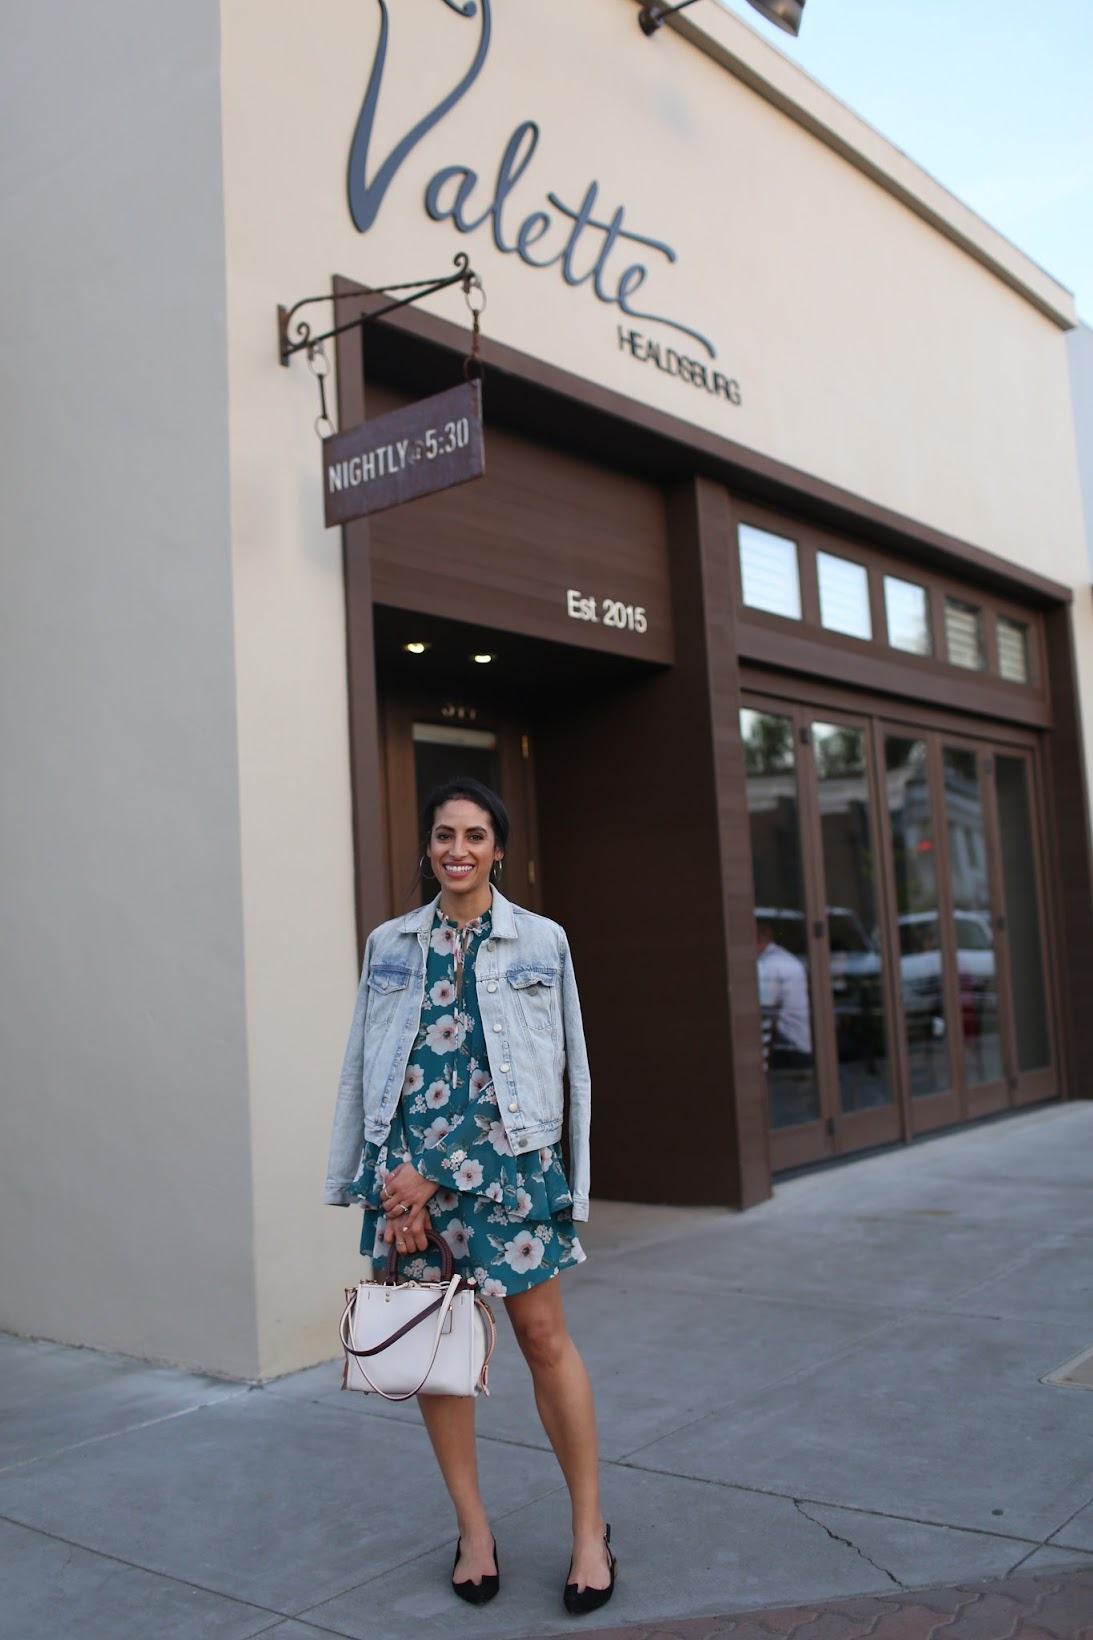 cute forever21 floral dress, bell sleeves, slingback flats, Coach Rogue bag, Valette in Healdsburg